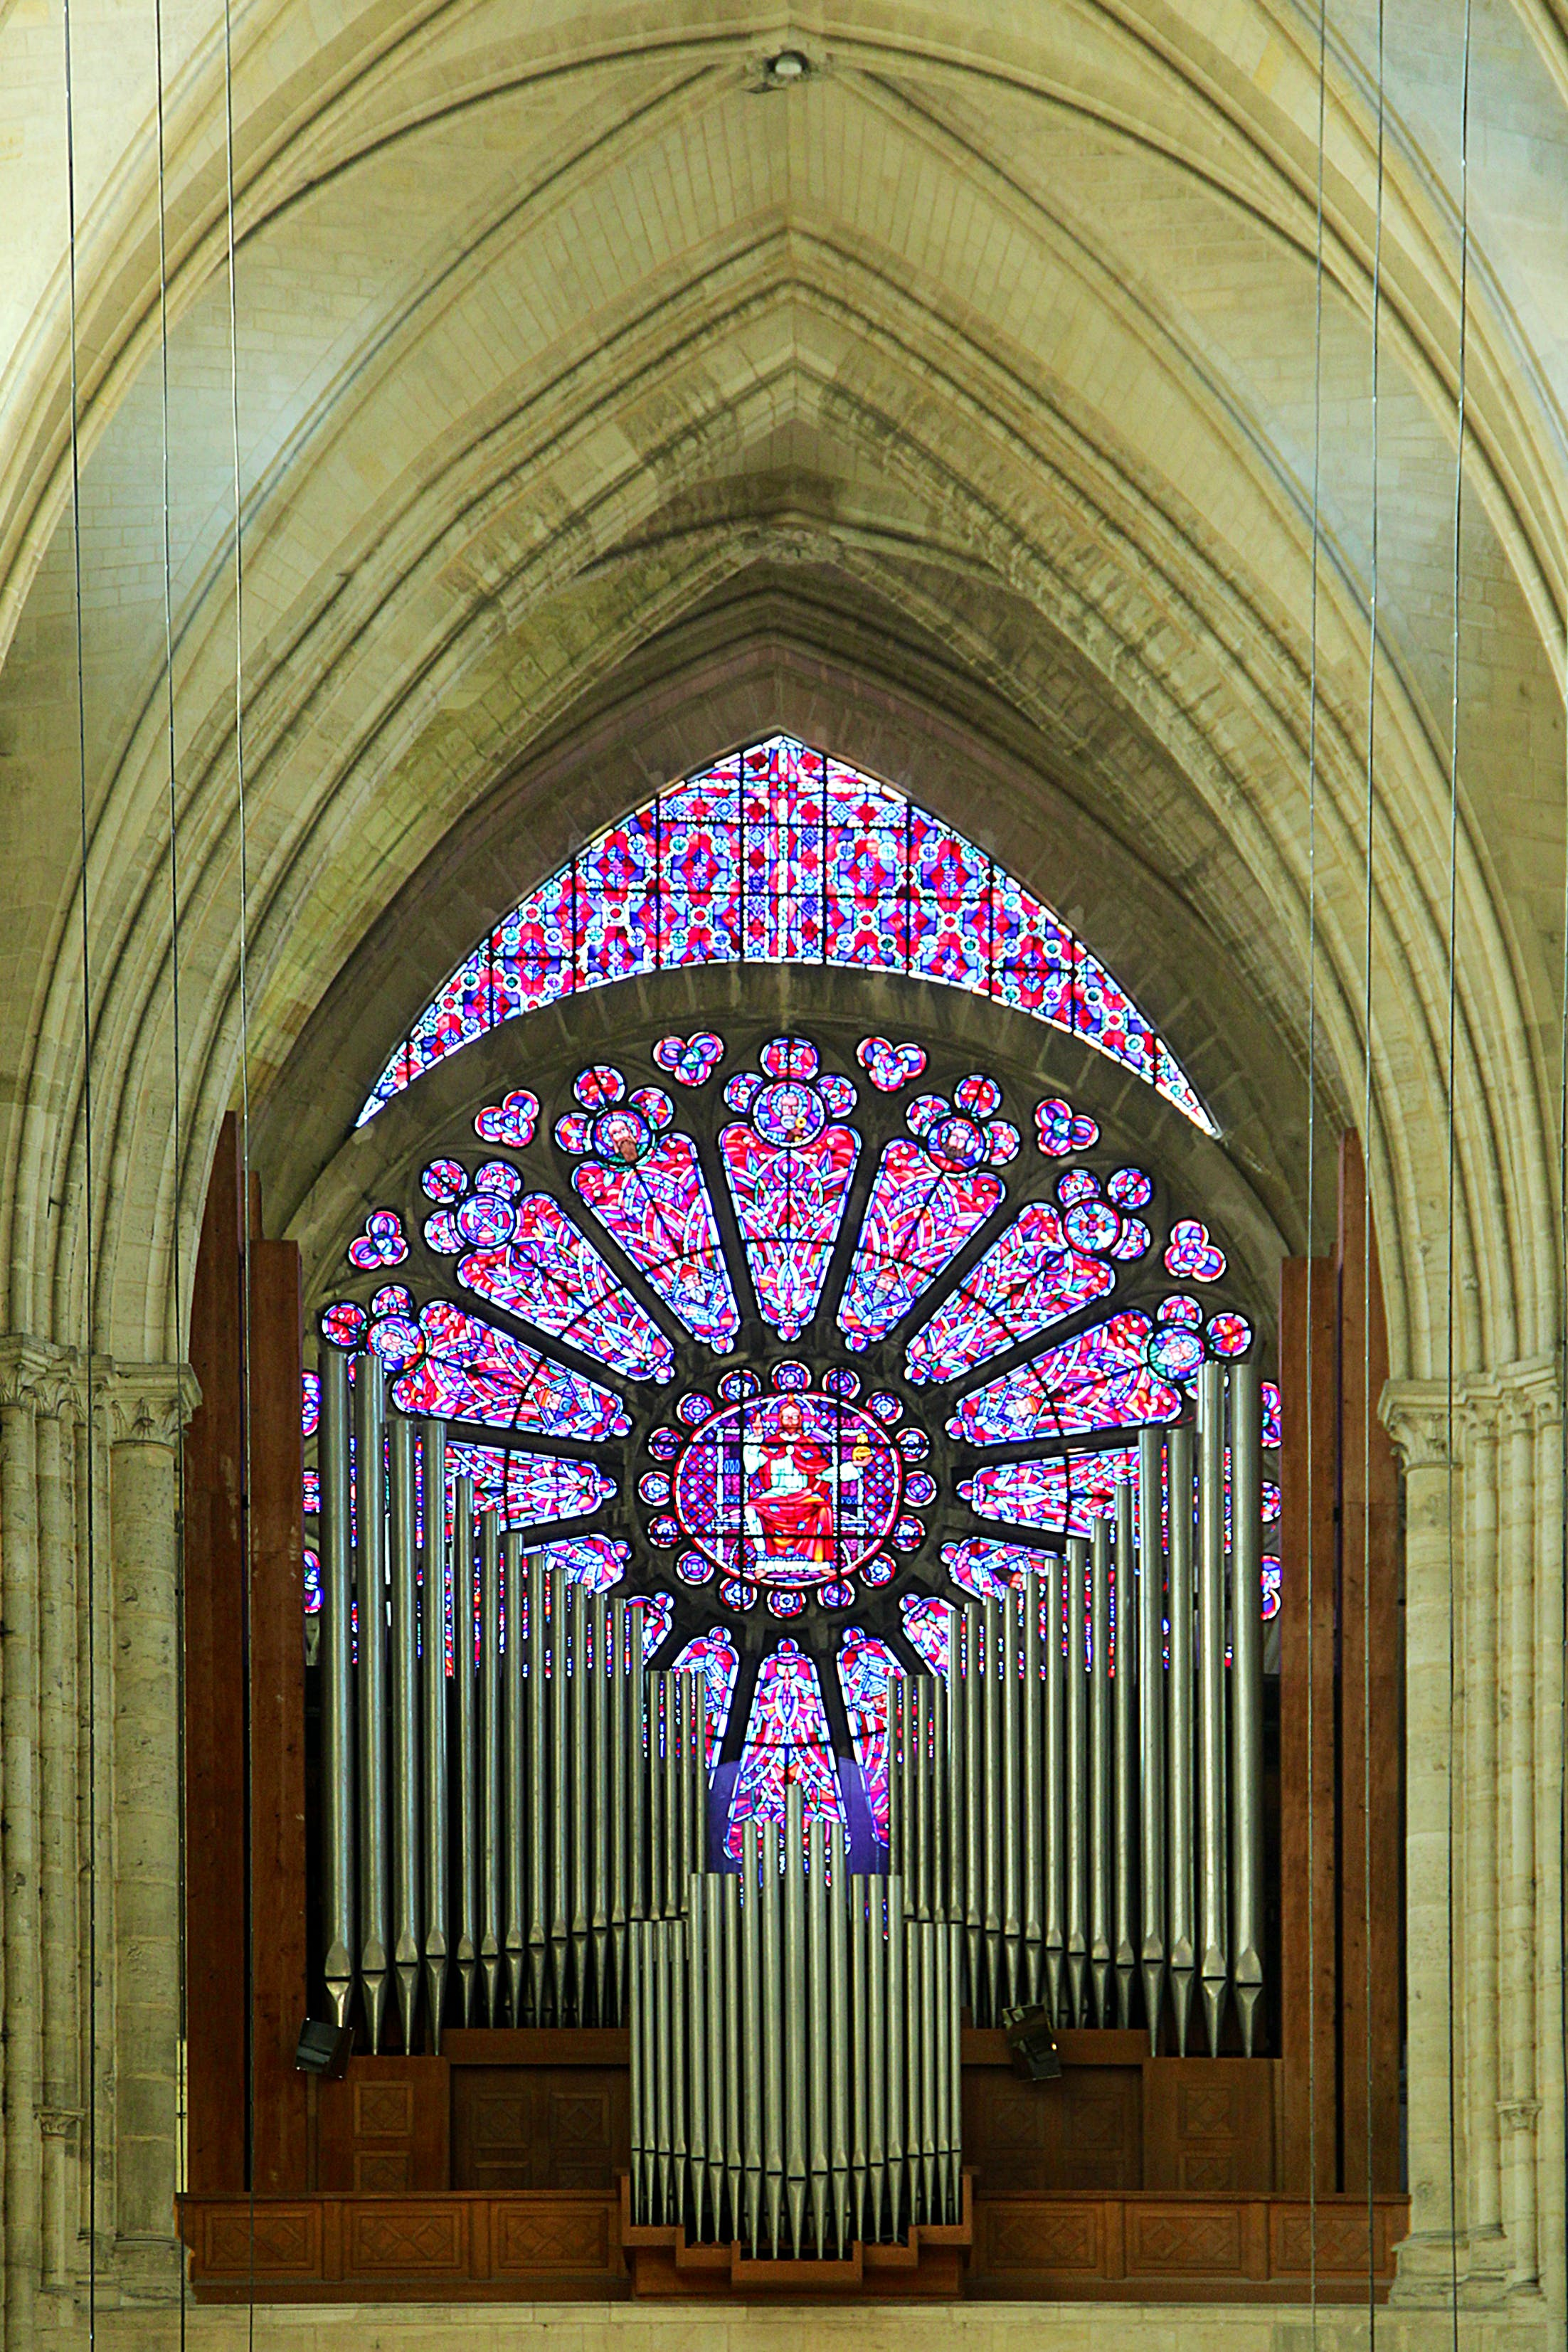 The great organ and west rose window of Soissons Cathedral. Wikimedia Commons